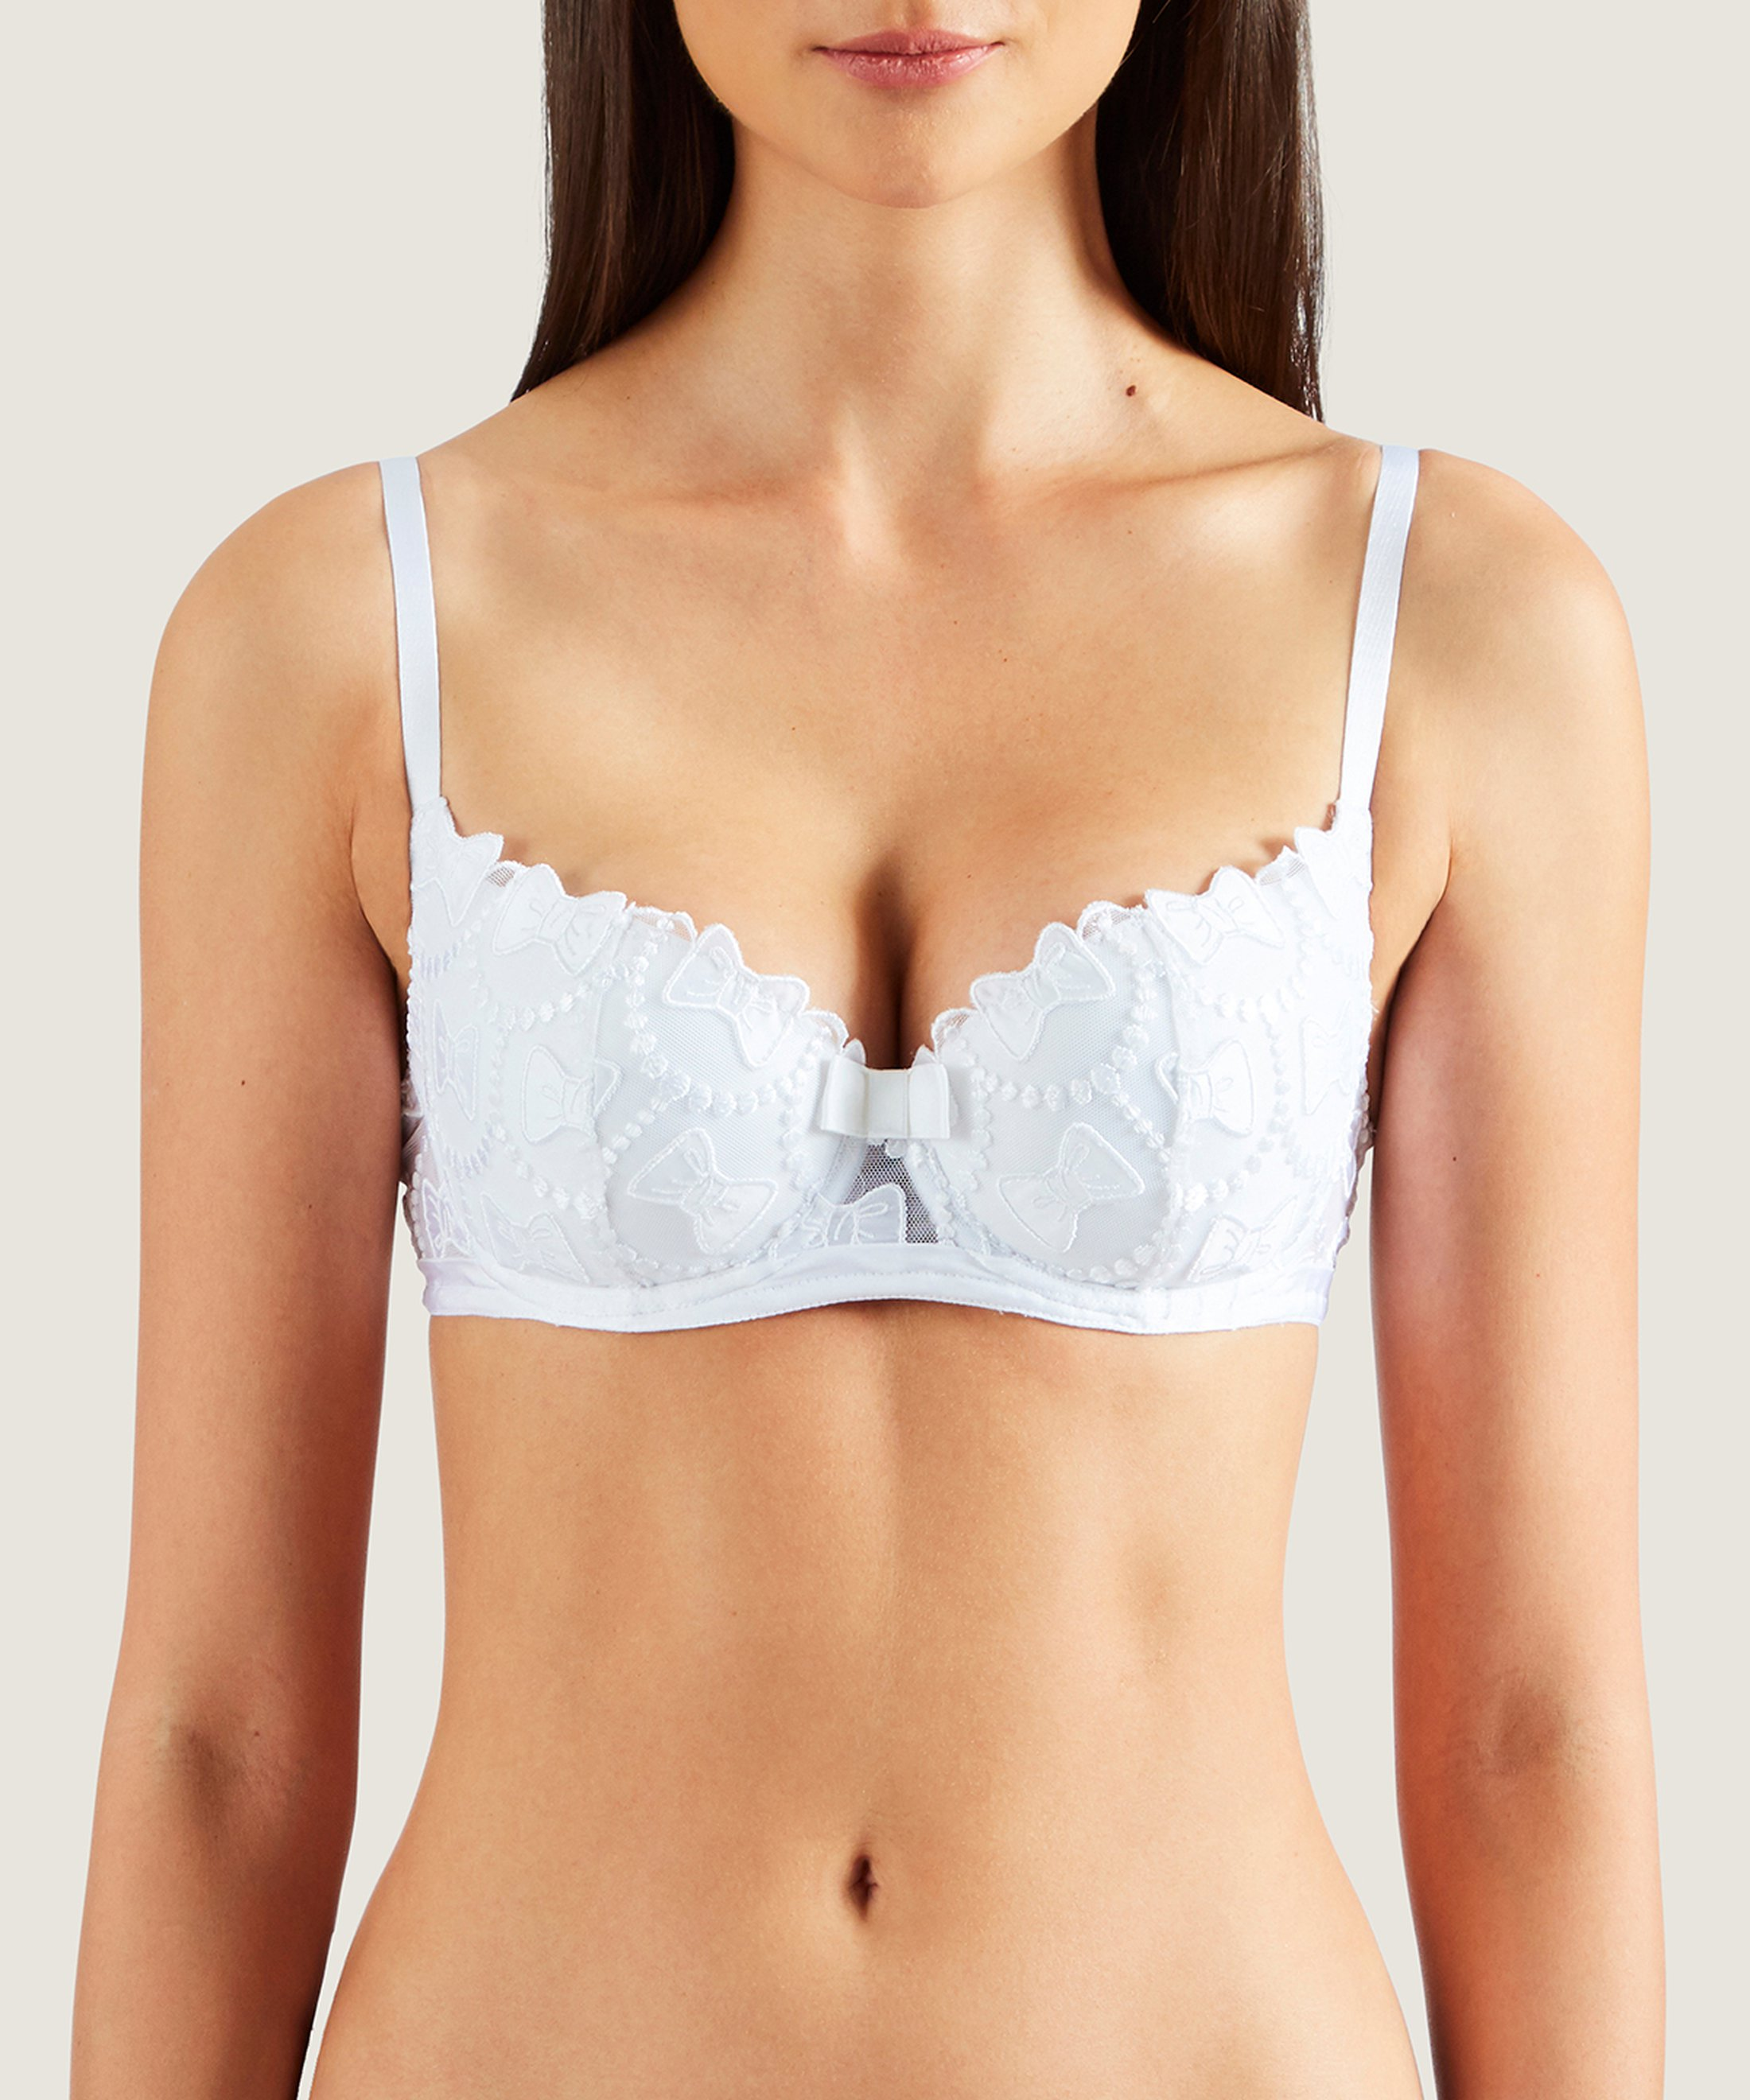 THE BOW COLLECTION Soutien-gorge corbeille coque Blanc | Aubade